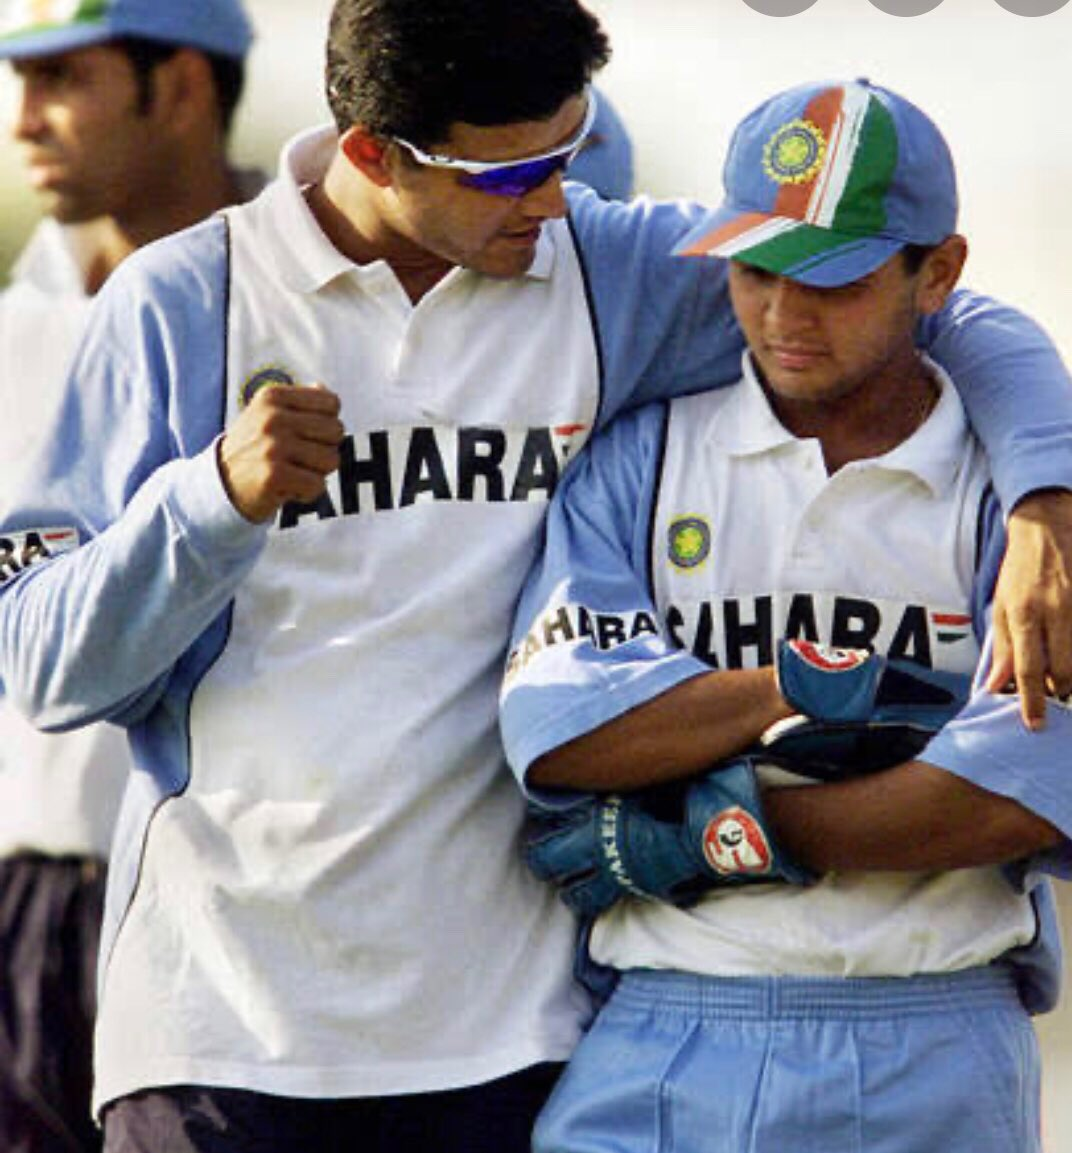 Dear dada, Thank you the guidance, leadership, and endless support..@SGanguly99 #HappyBirthdayDada🎂:@Parthiv9!  Go ahead always spend better your life with family members & faith till last breath 4humanity! #ICCHallOfFame #CricketConnected #BCCI @BCCI @ICC #Cricket #ICC #EngvWi! https://t.co/bt9QEsRZ4M